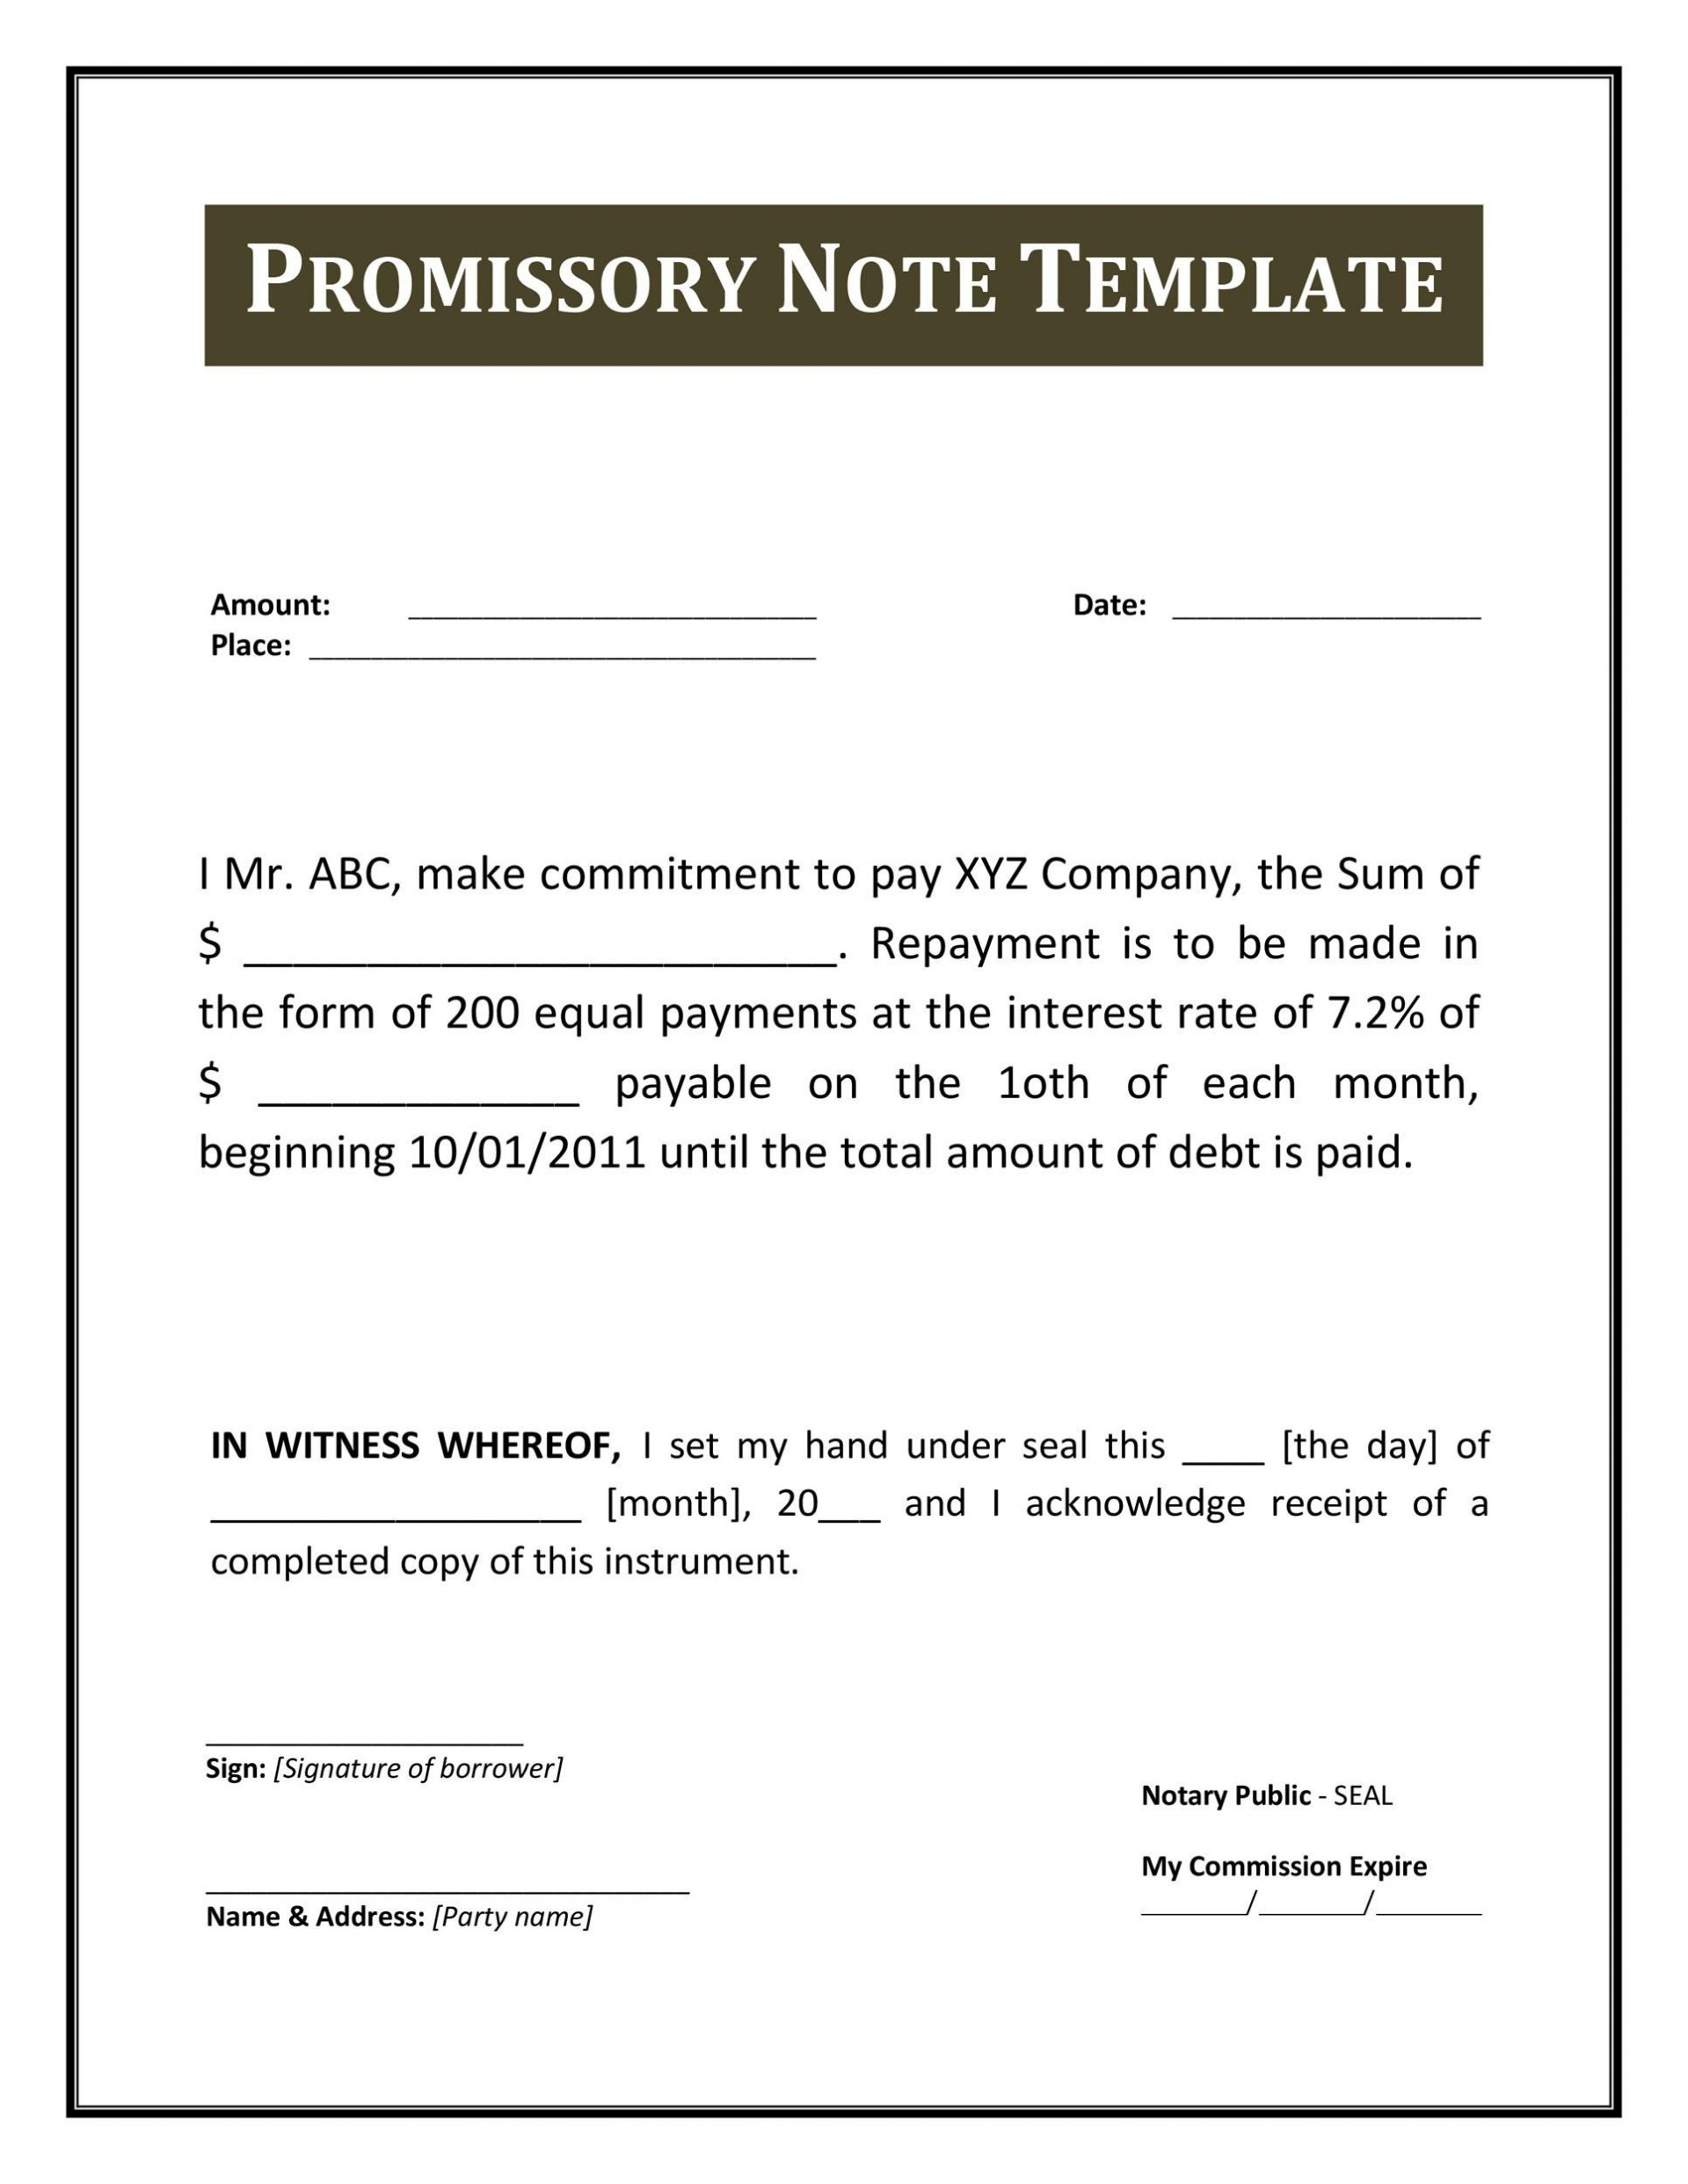 005 Marvelou Loan Promissory Note Template Highest Quality  Family Busines Format For Hand1920